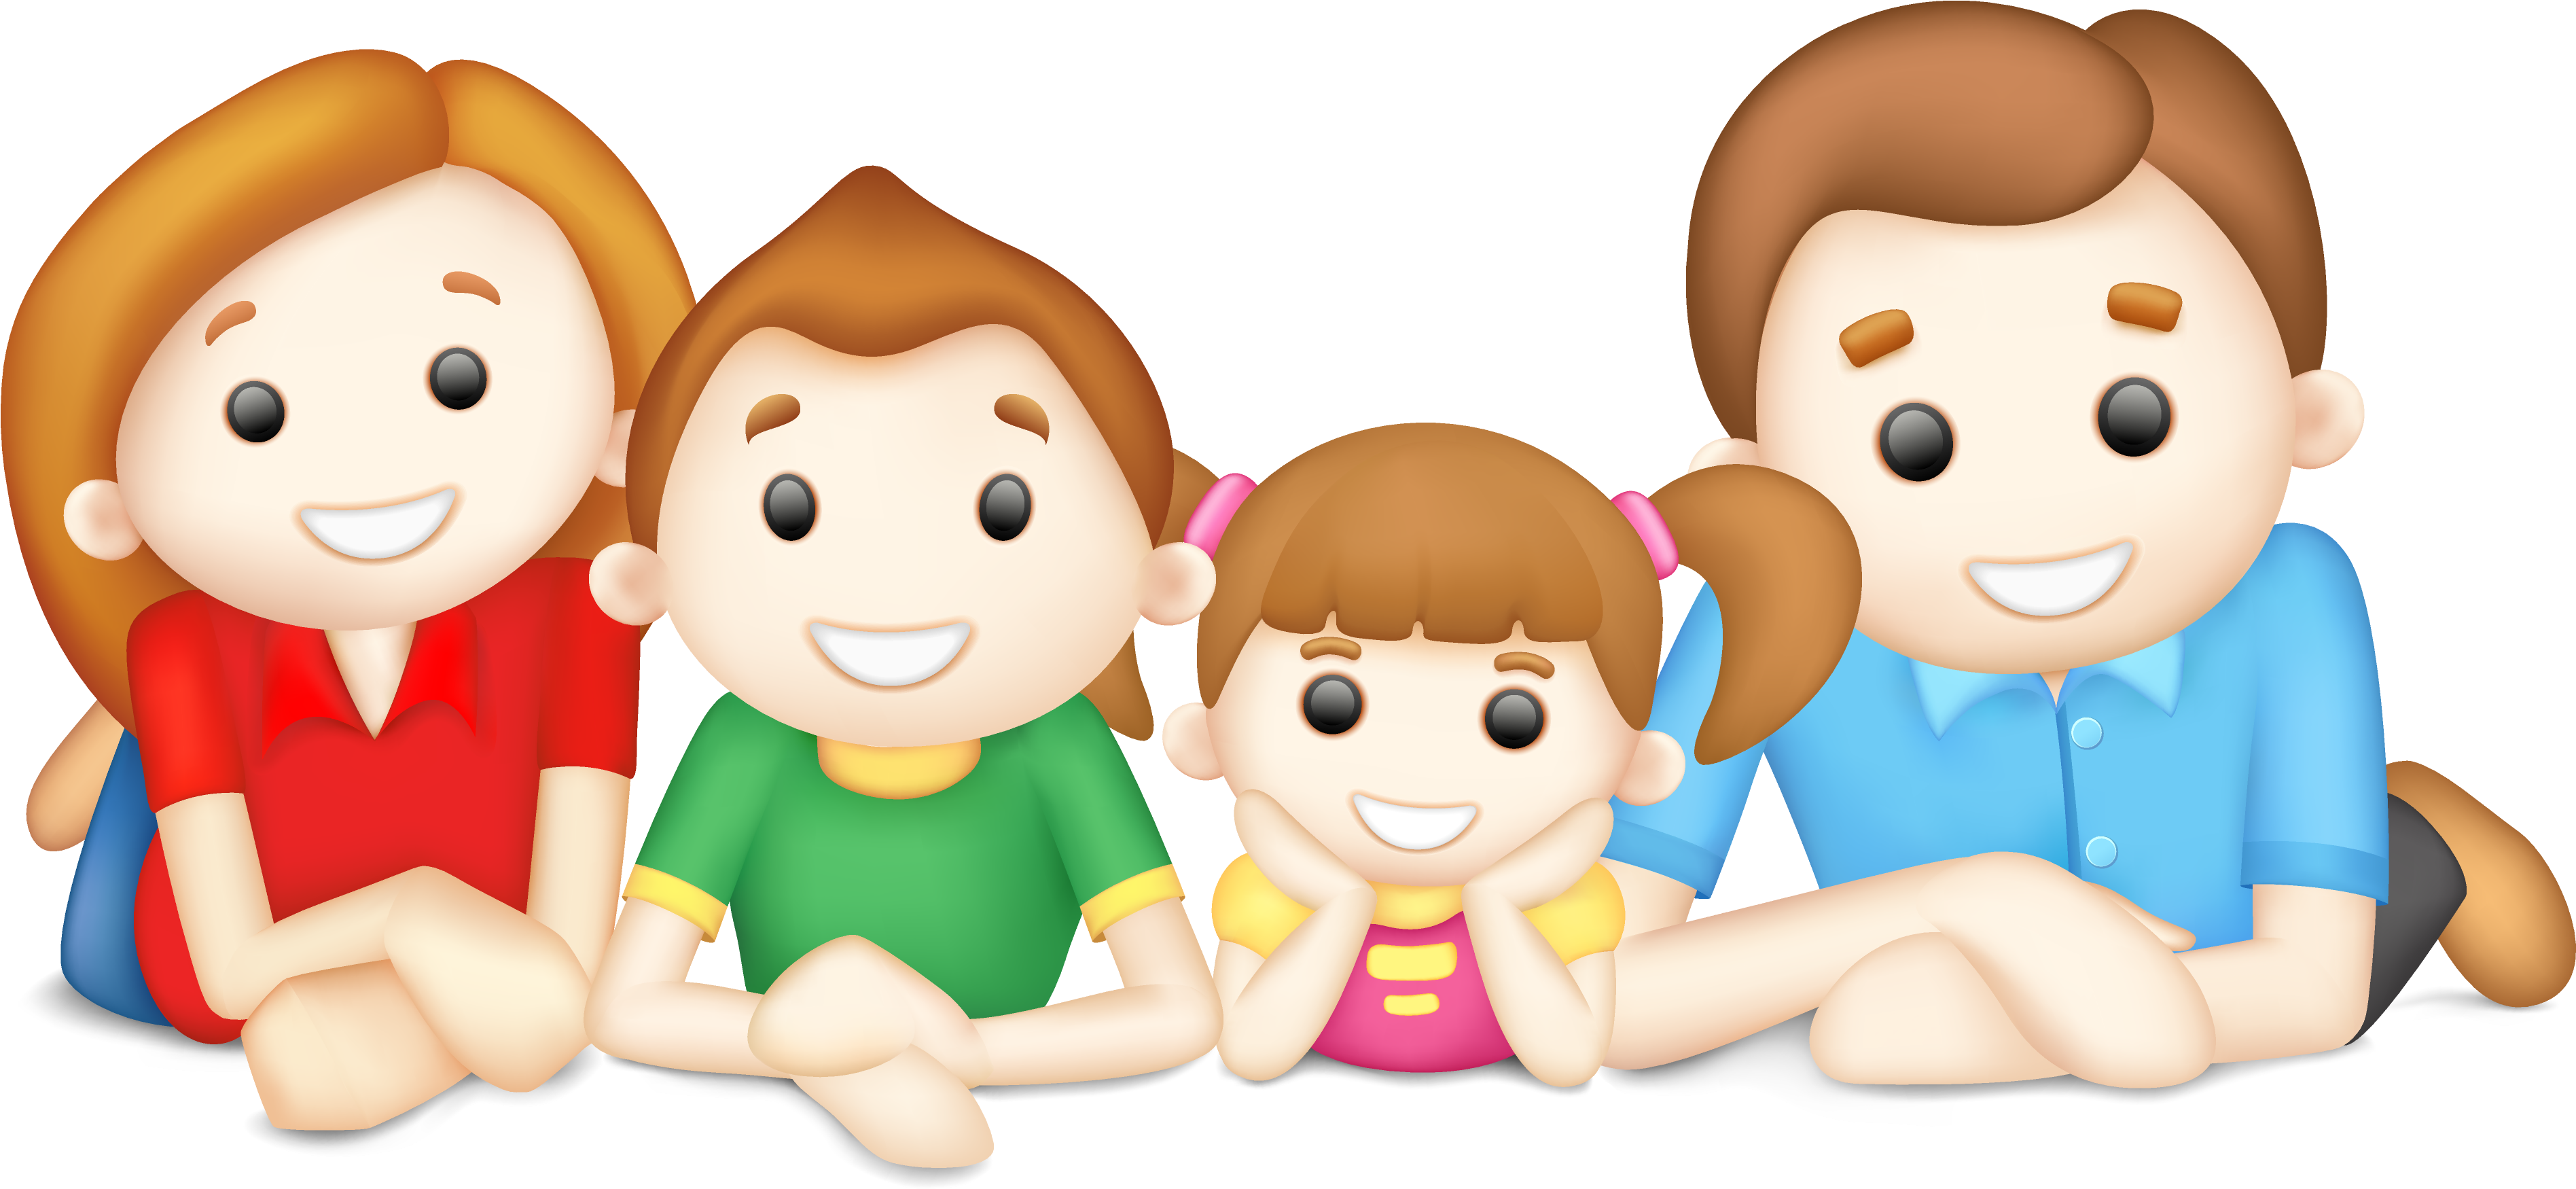 Families clipart happy family. Brothers and sisters